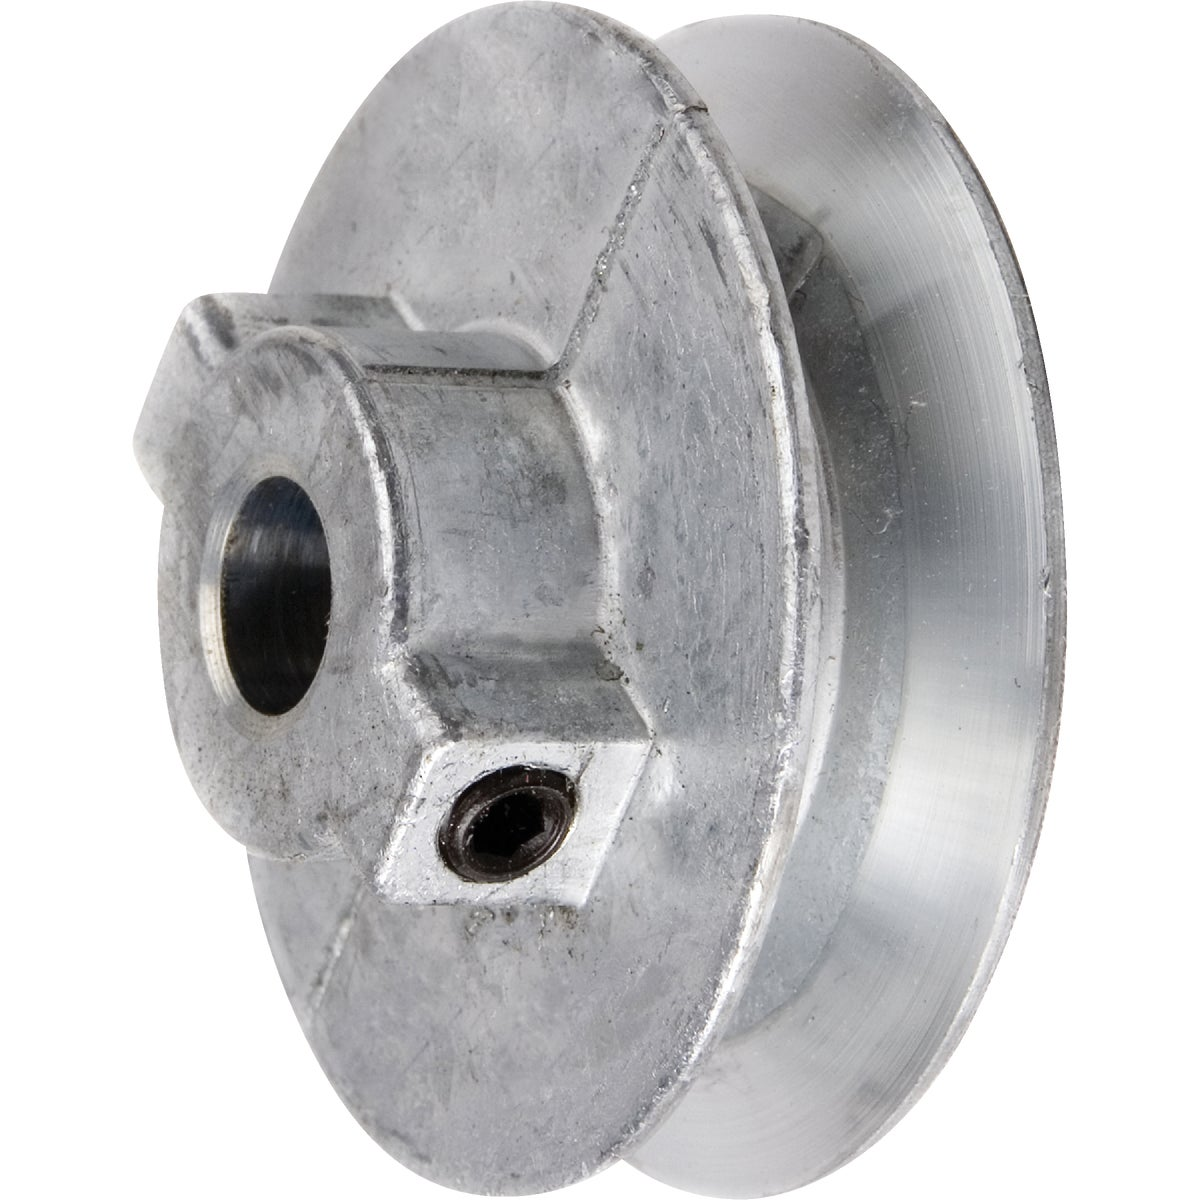 2X3/4 PULLEY